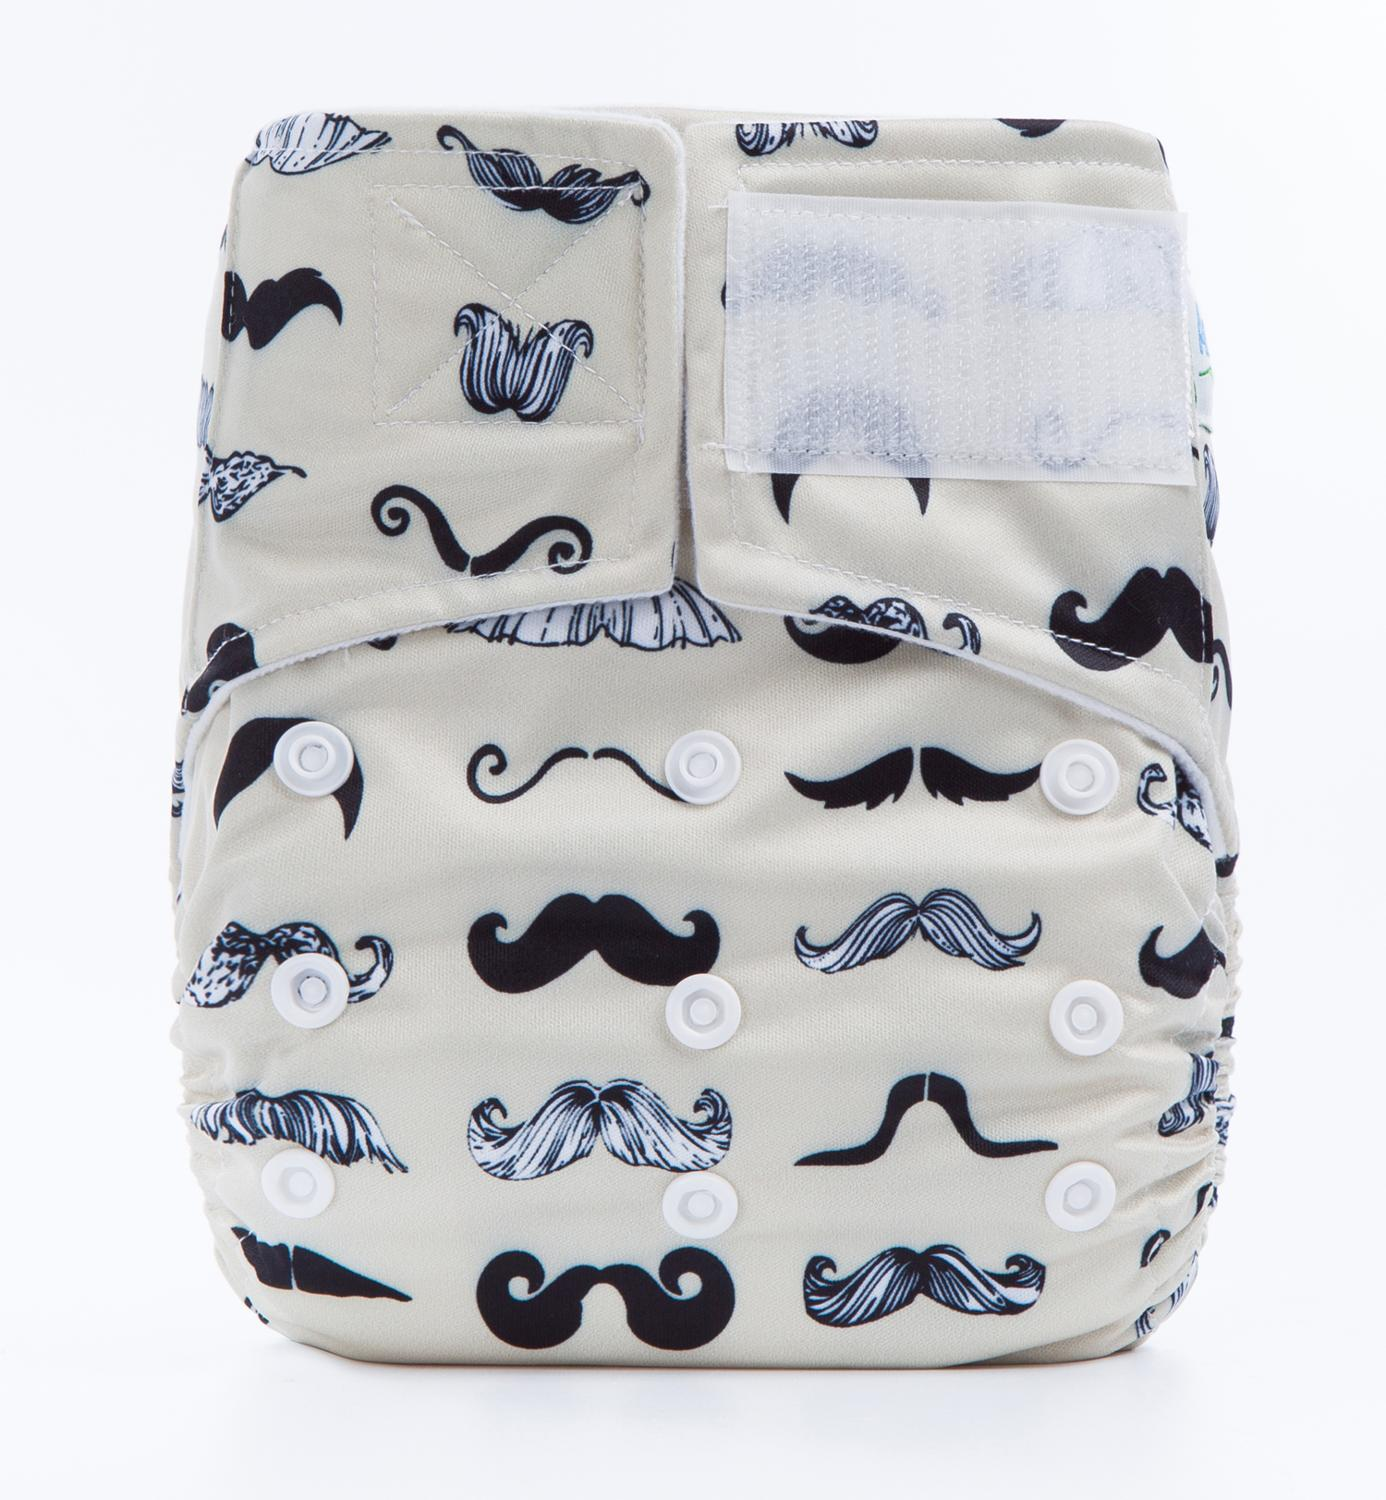 New Deisgn Baby Cloth Diaper Nappies With Hookloop Square Tab Suede Cloth Inner Prints Diaper Cover For Sale